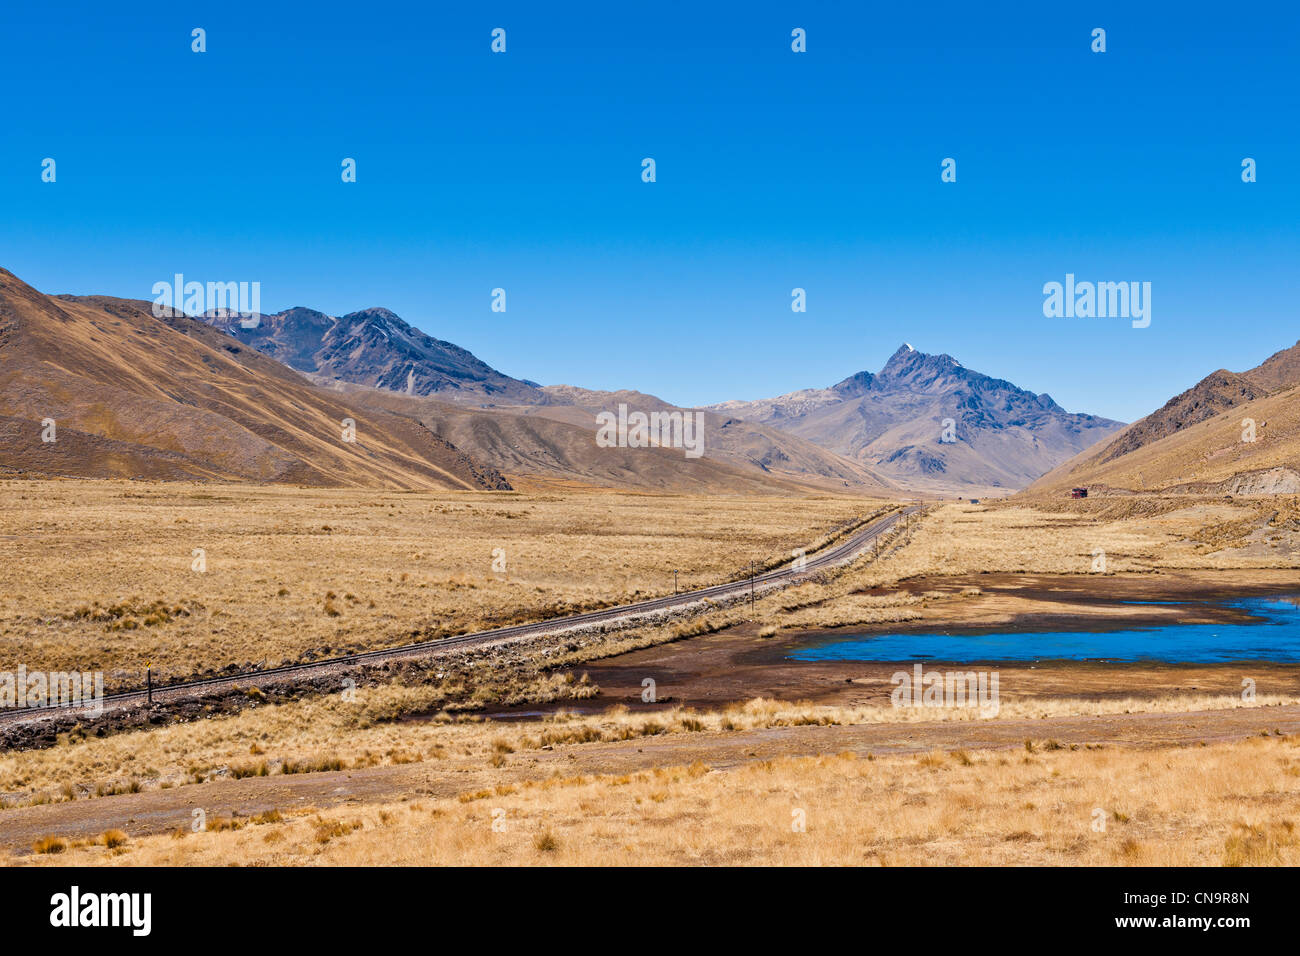 Peru, Puno province, landscape of the Altiplano, rail line linking Cuzco to Puno - Stock Image